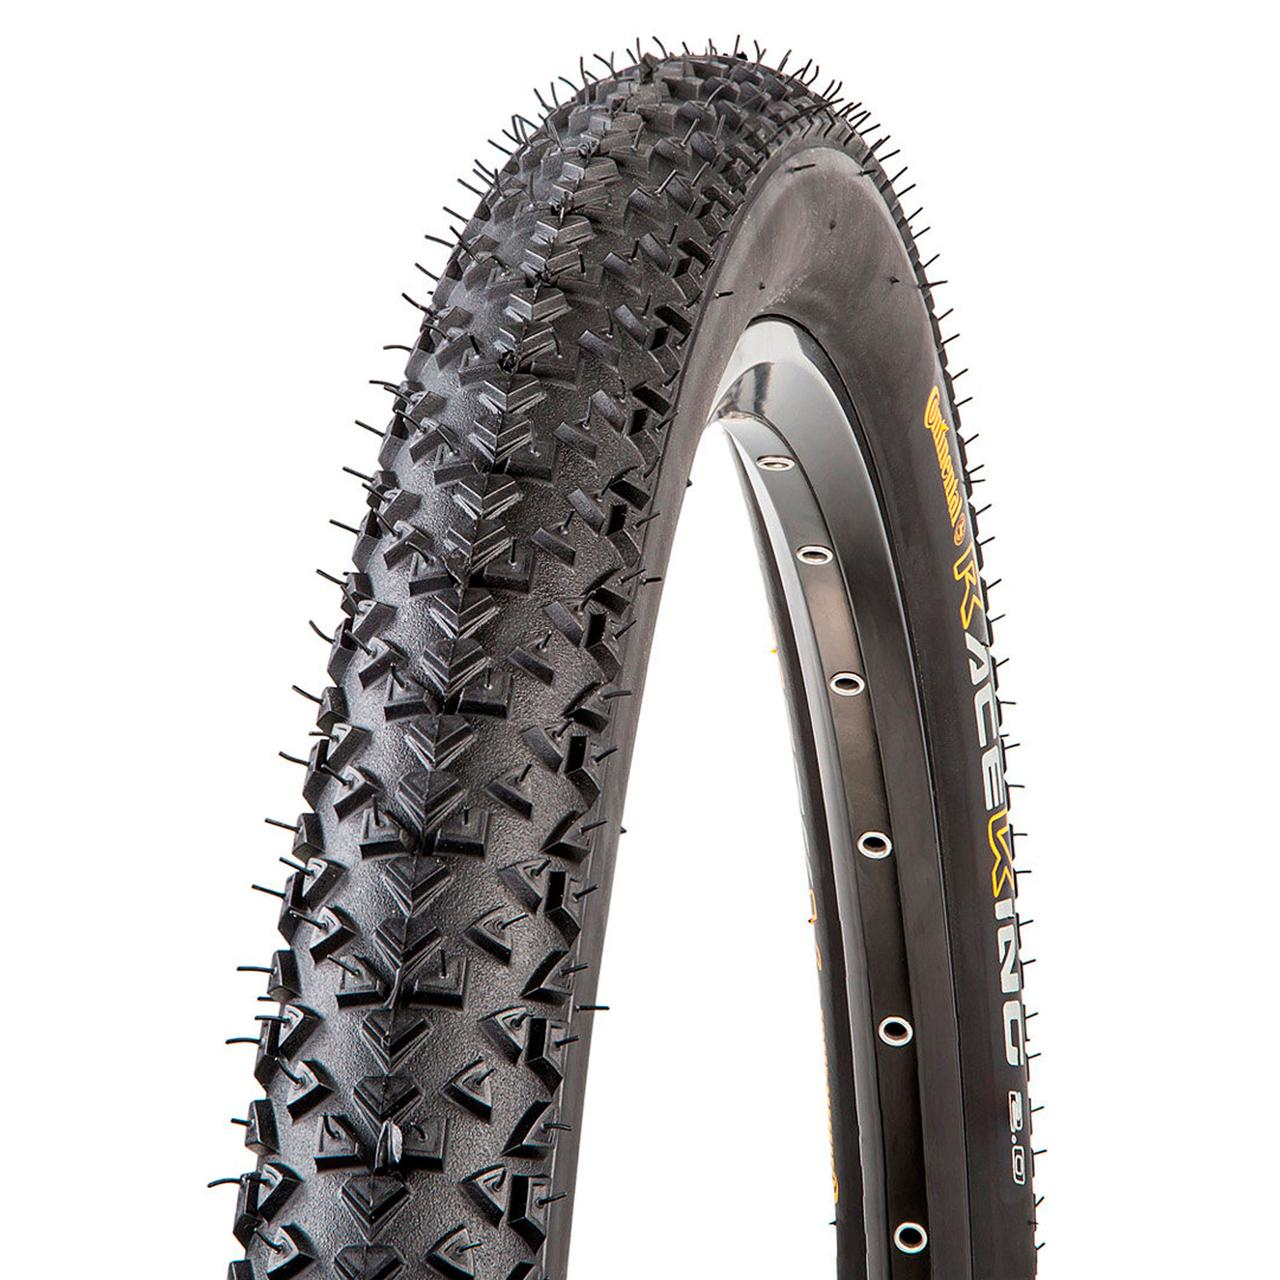 "Покрышка Continental Race King 2.0, 26""x2.00, 50-559, Foldable, PureGrip, ShieldWall System, Skin, 630гр."